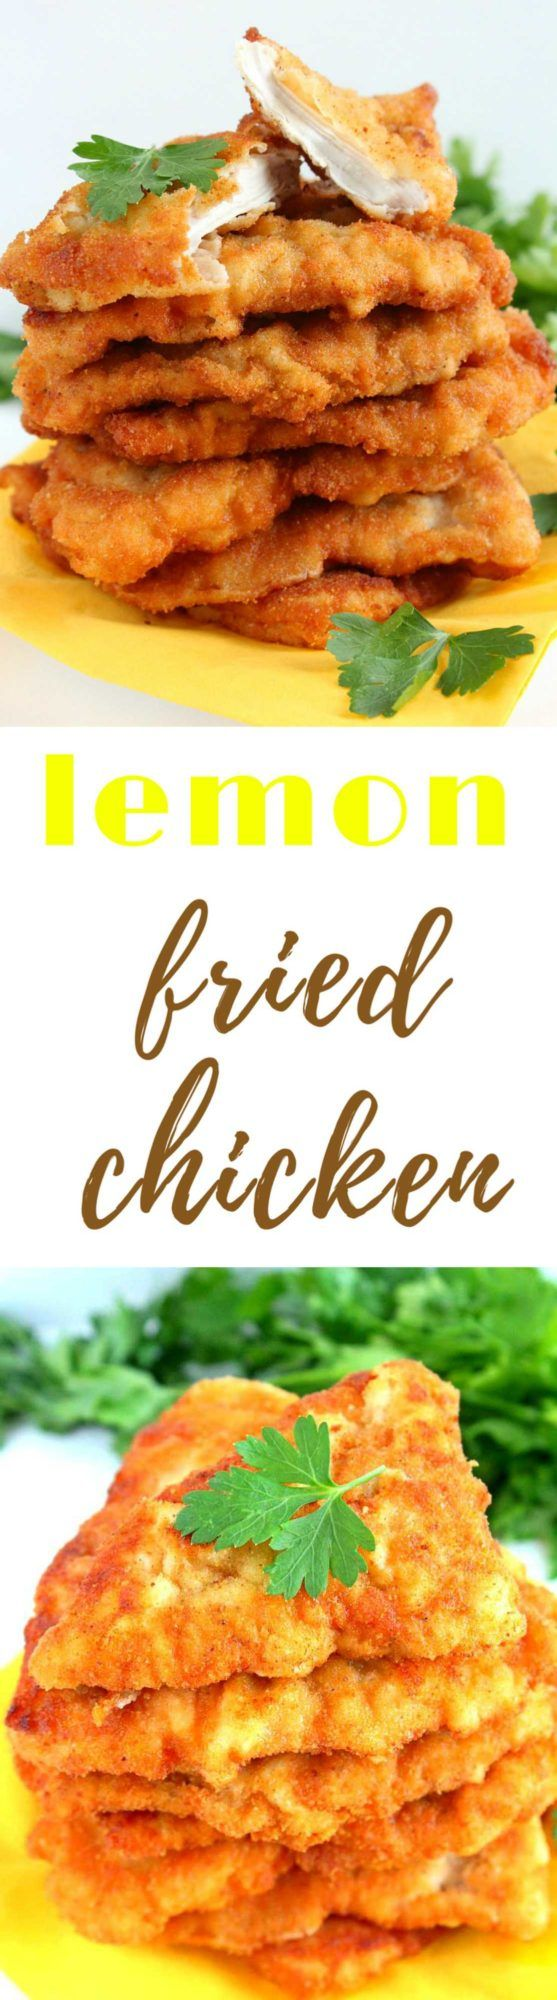 LEMON FRIED CHICKEN